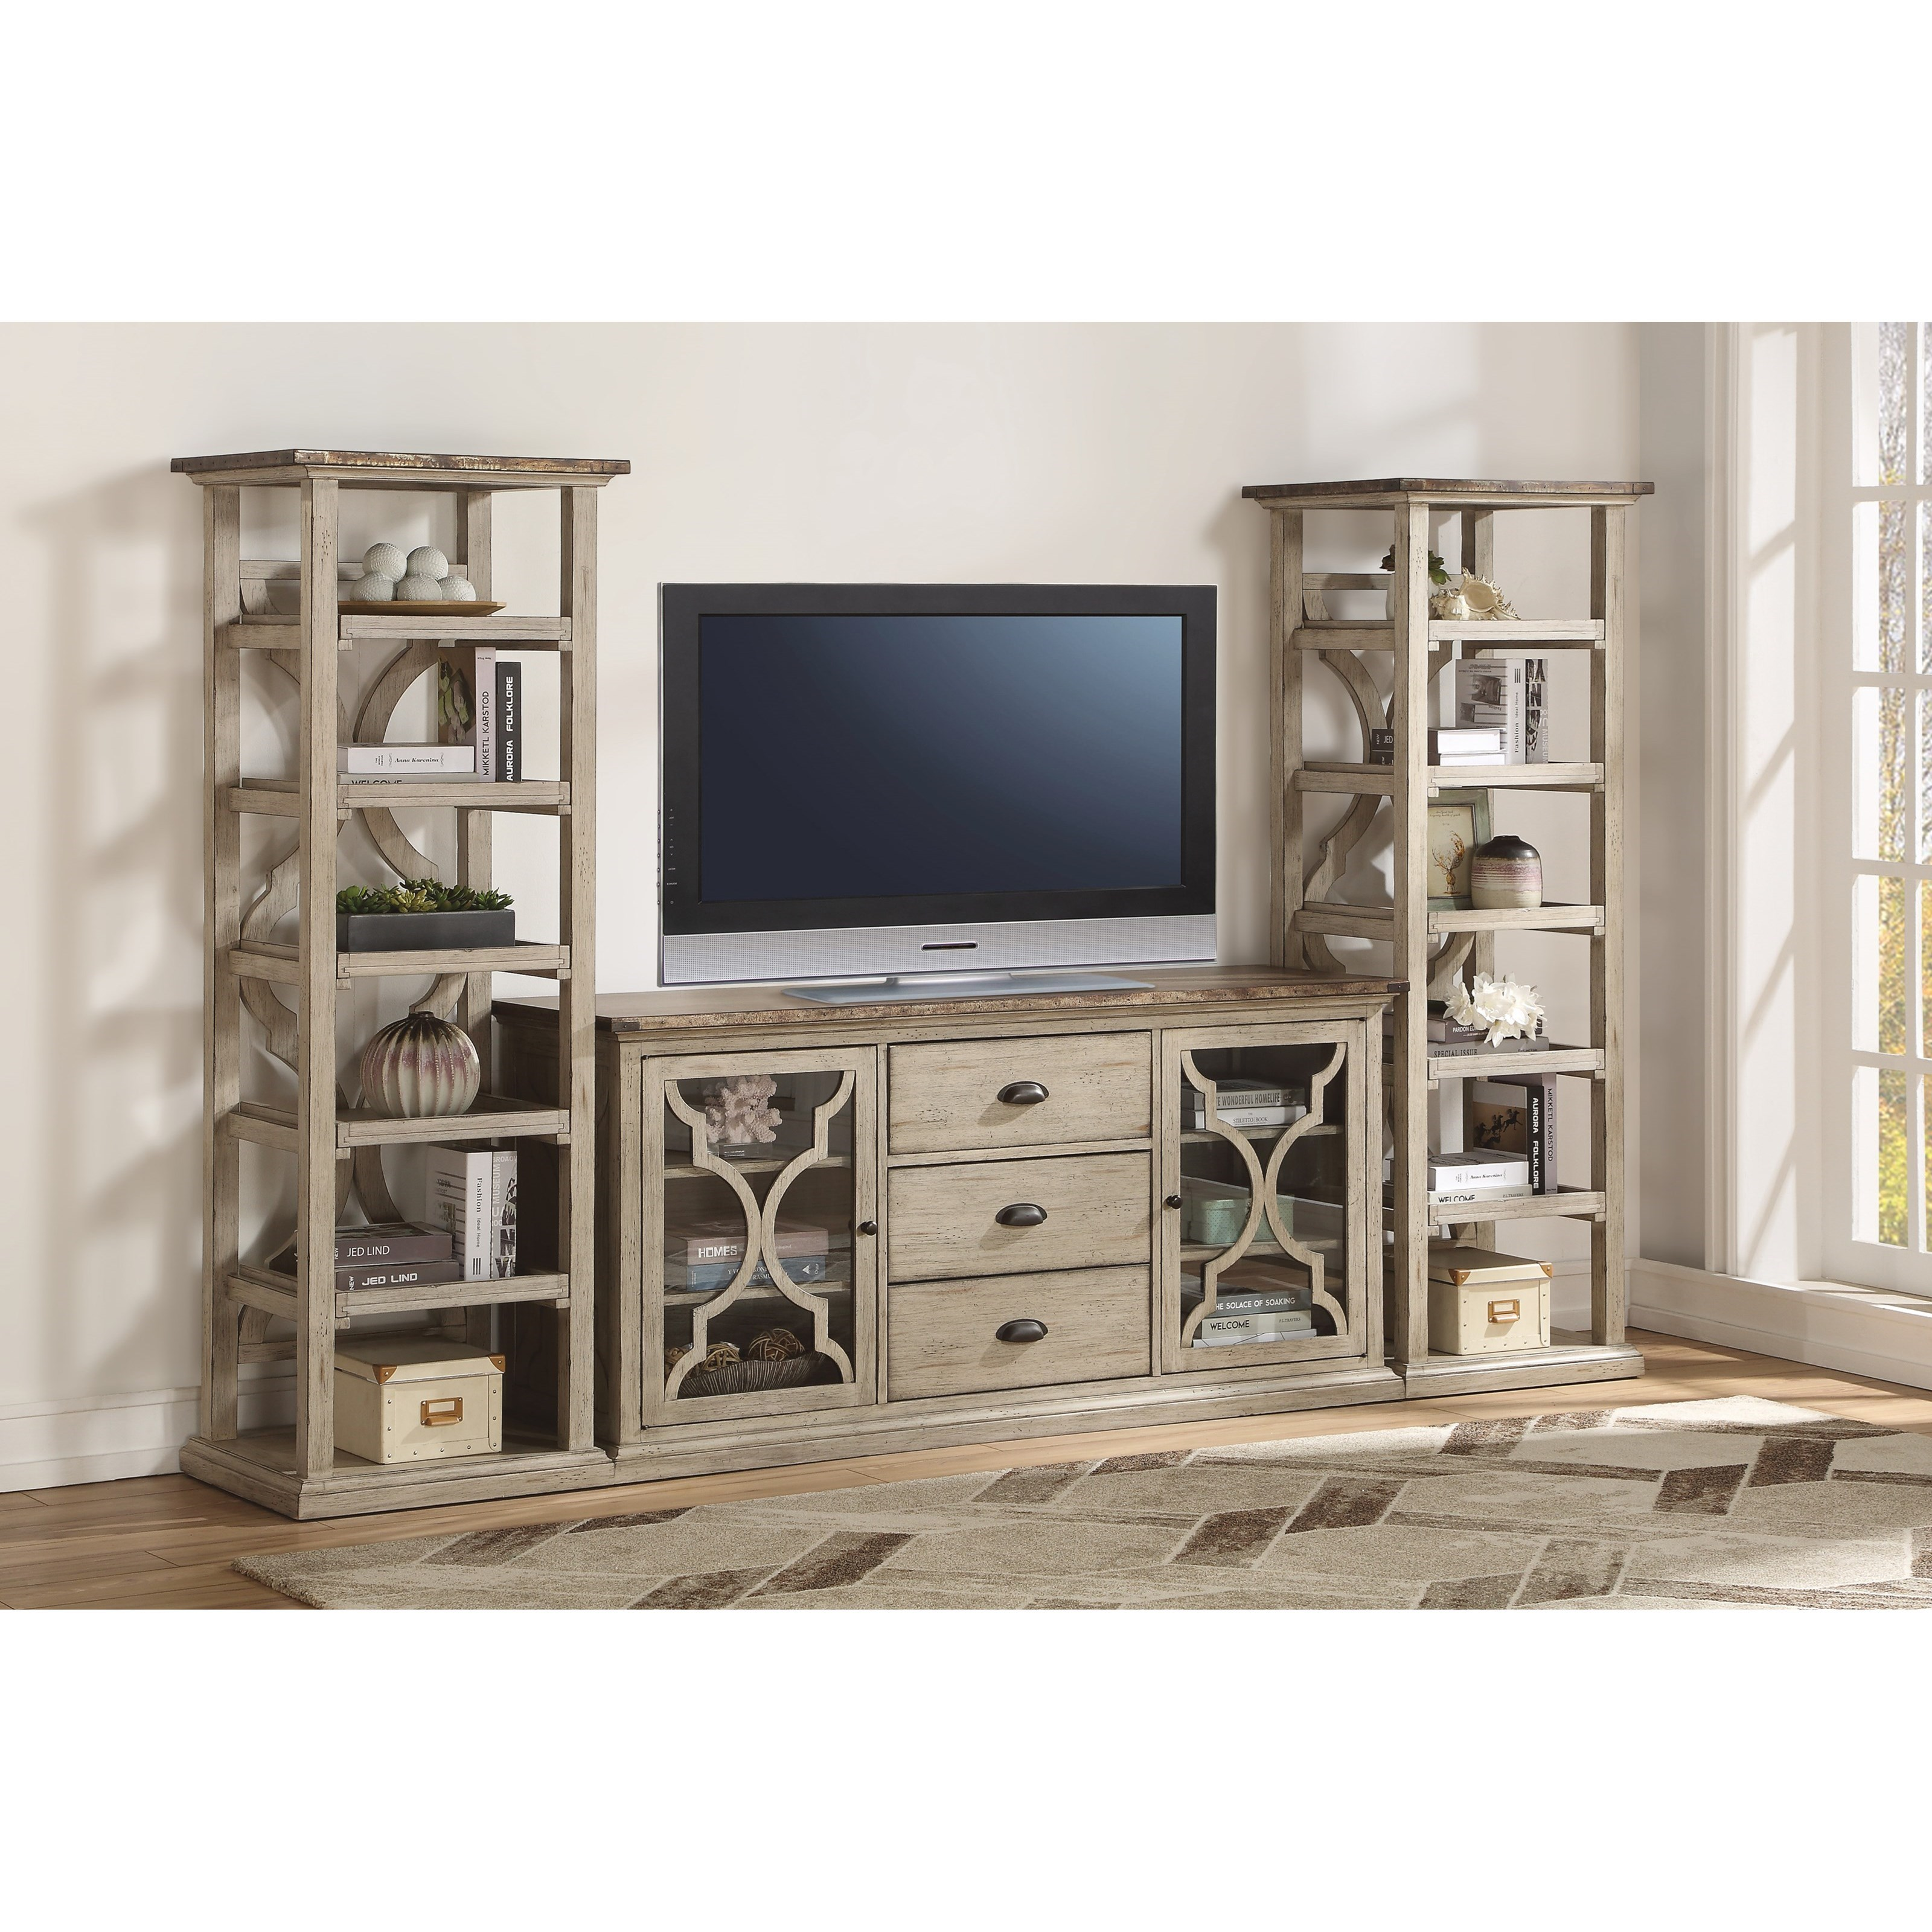 Estate Entertainment Center by Flexsteel Wynwood Collection at Steger's Furniture